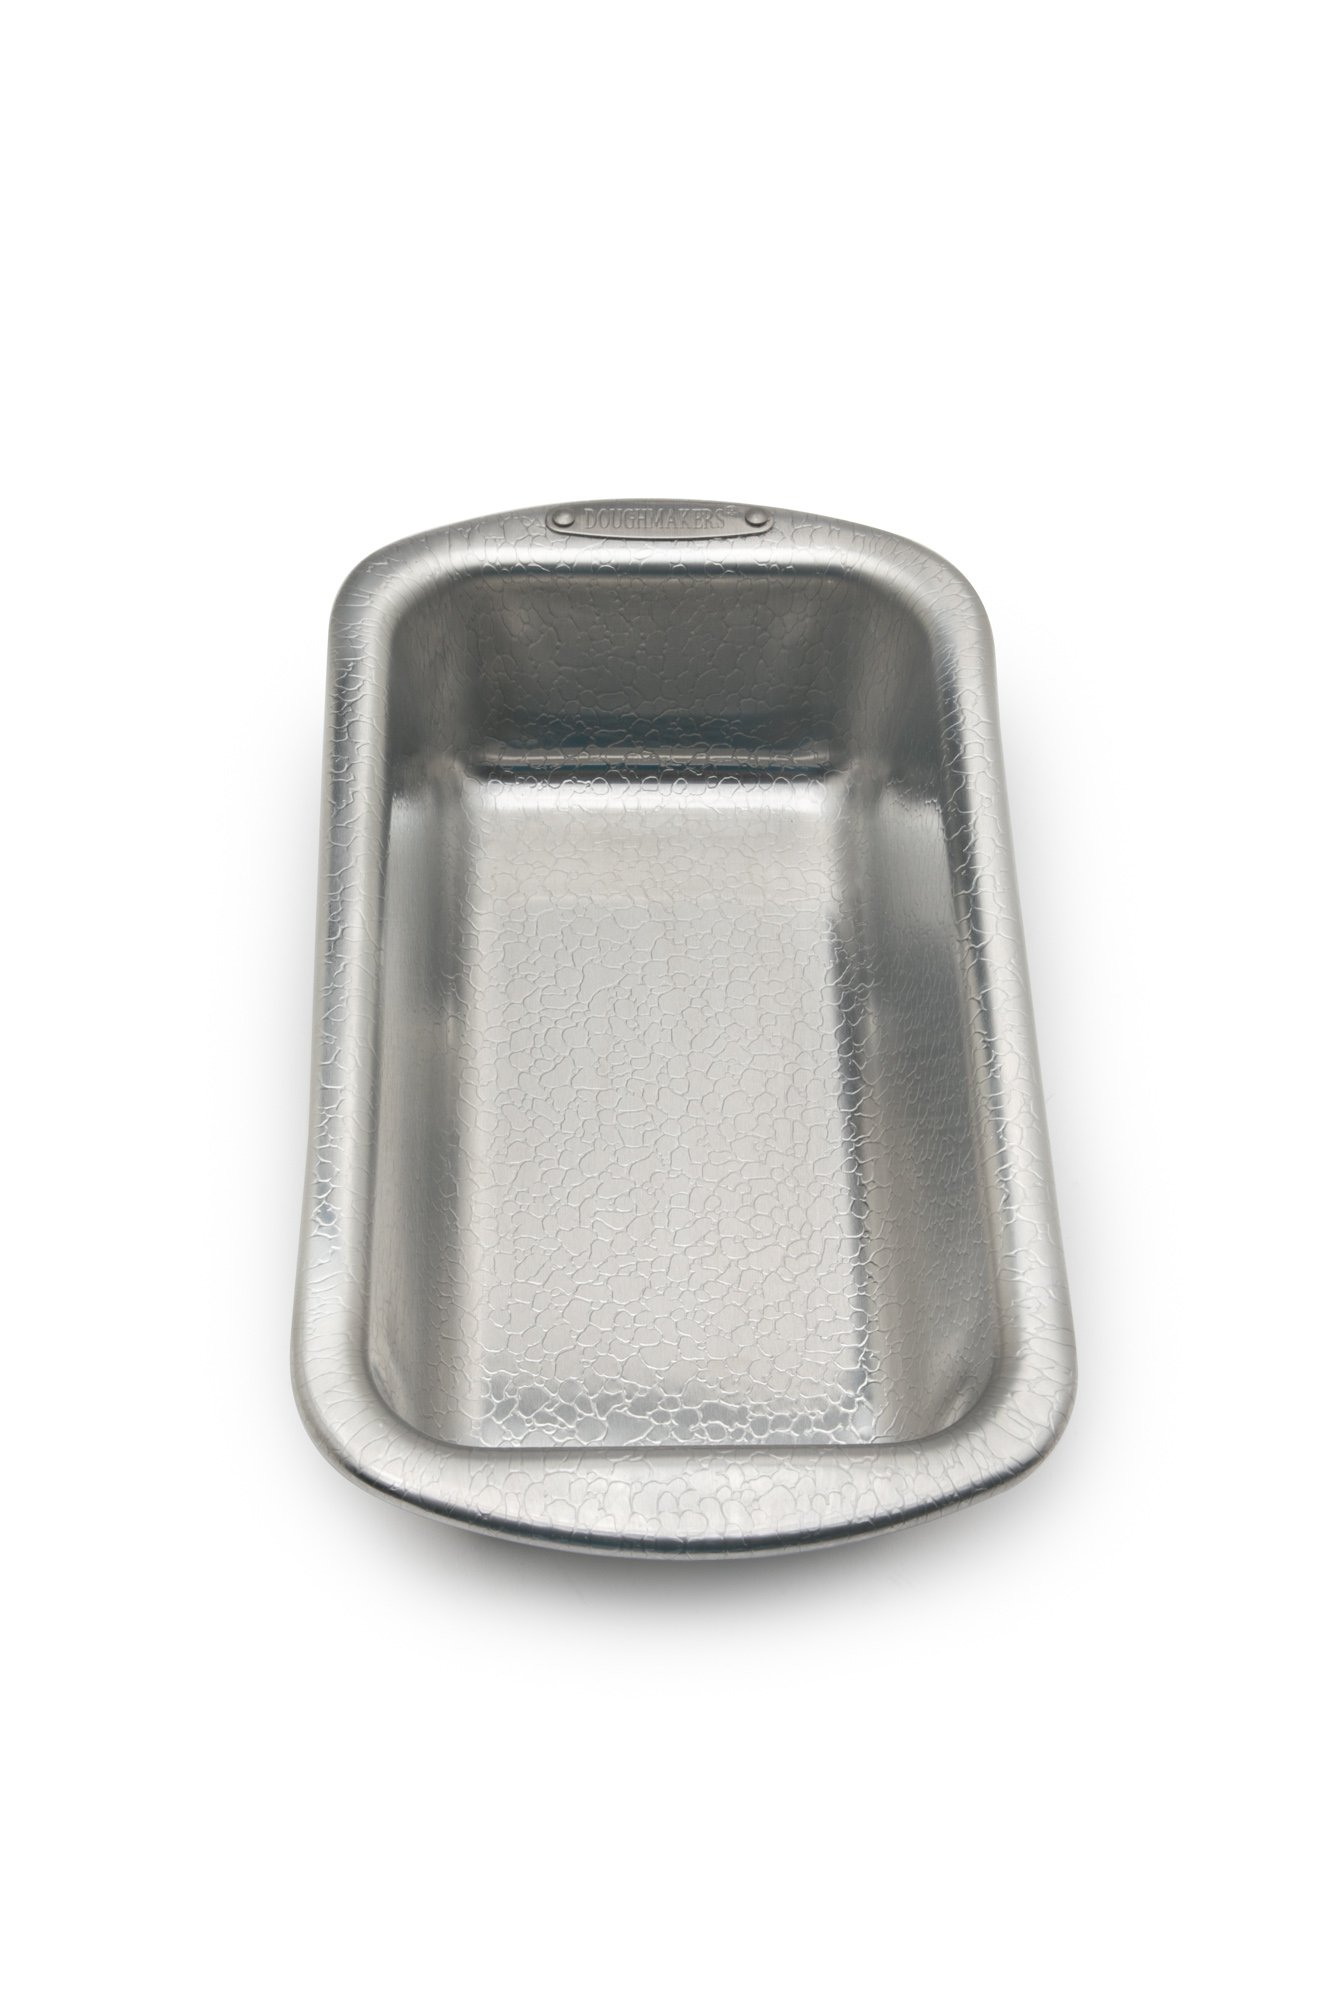 Loaf Pan Commercial Grade Aluminum 8.5'' x 4.5'' by Doughmakers (Image #2)